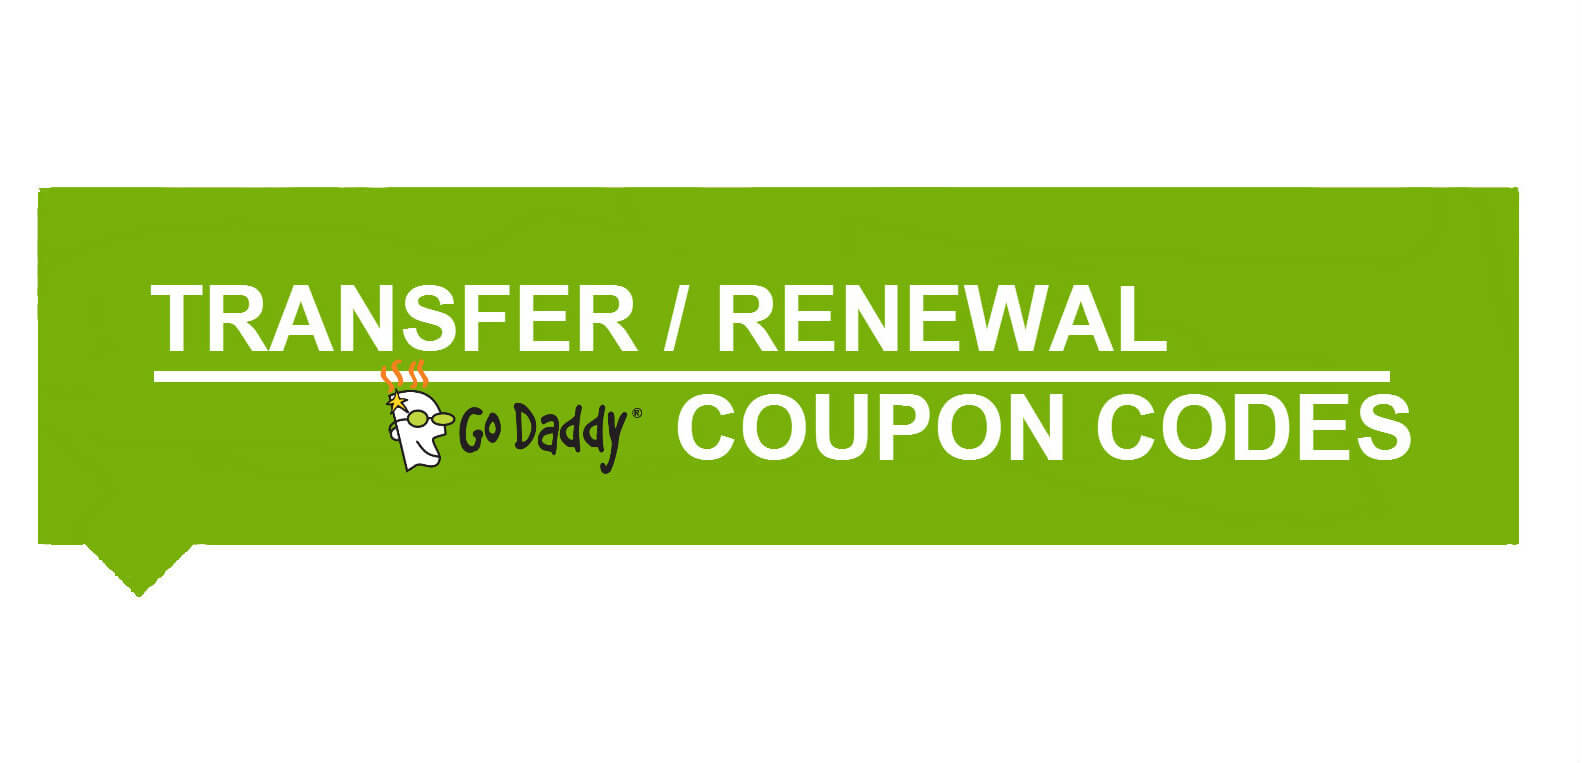 Discount coupon godaddy